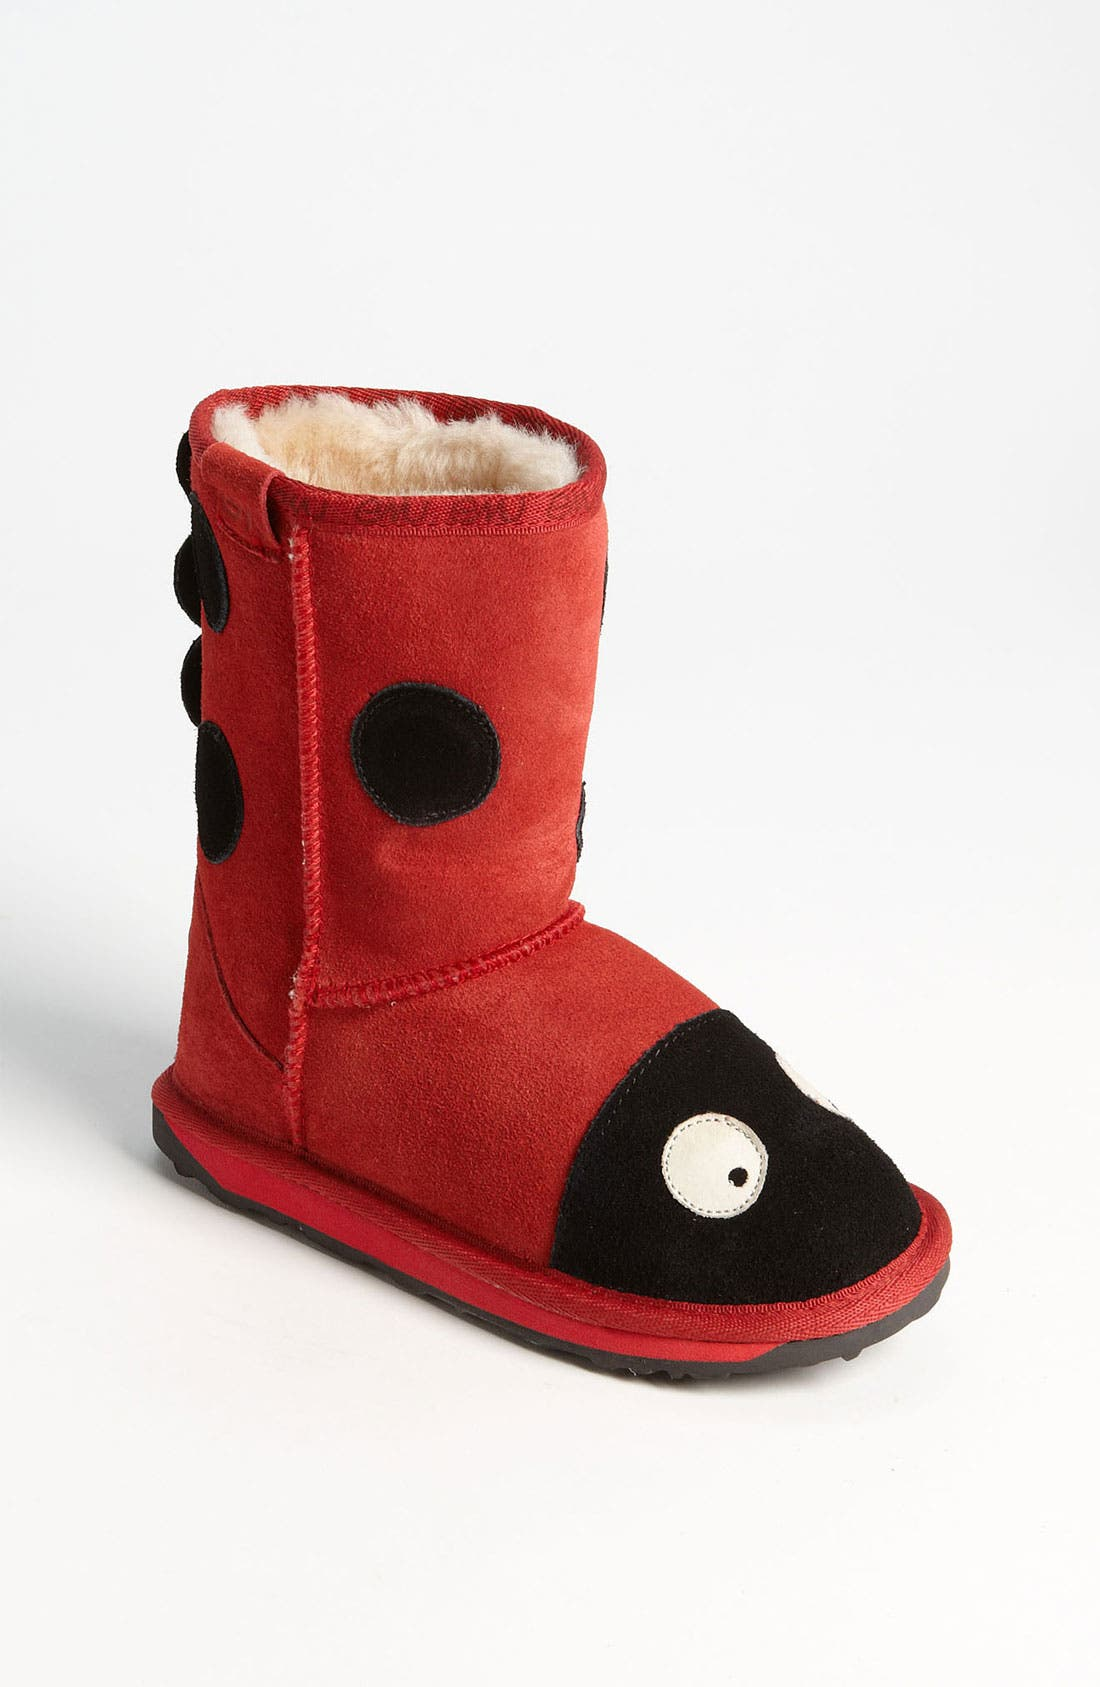 Alternate Image 1 Selected - EMU Australia 'Little Creatures - Ladybug' Boot (Toddler, Little Kid & Big Kid)